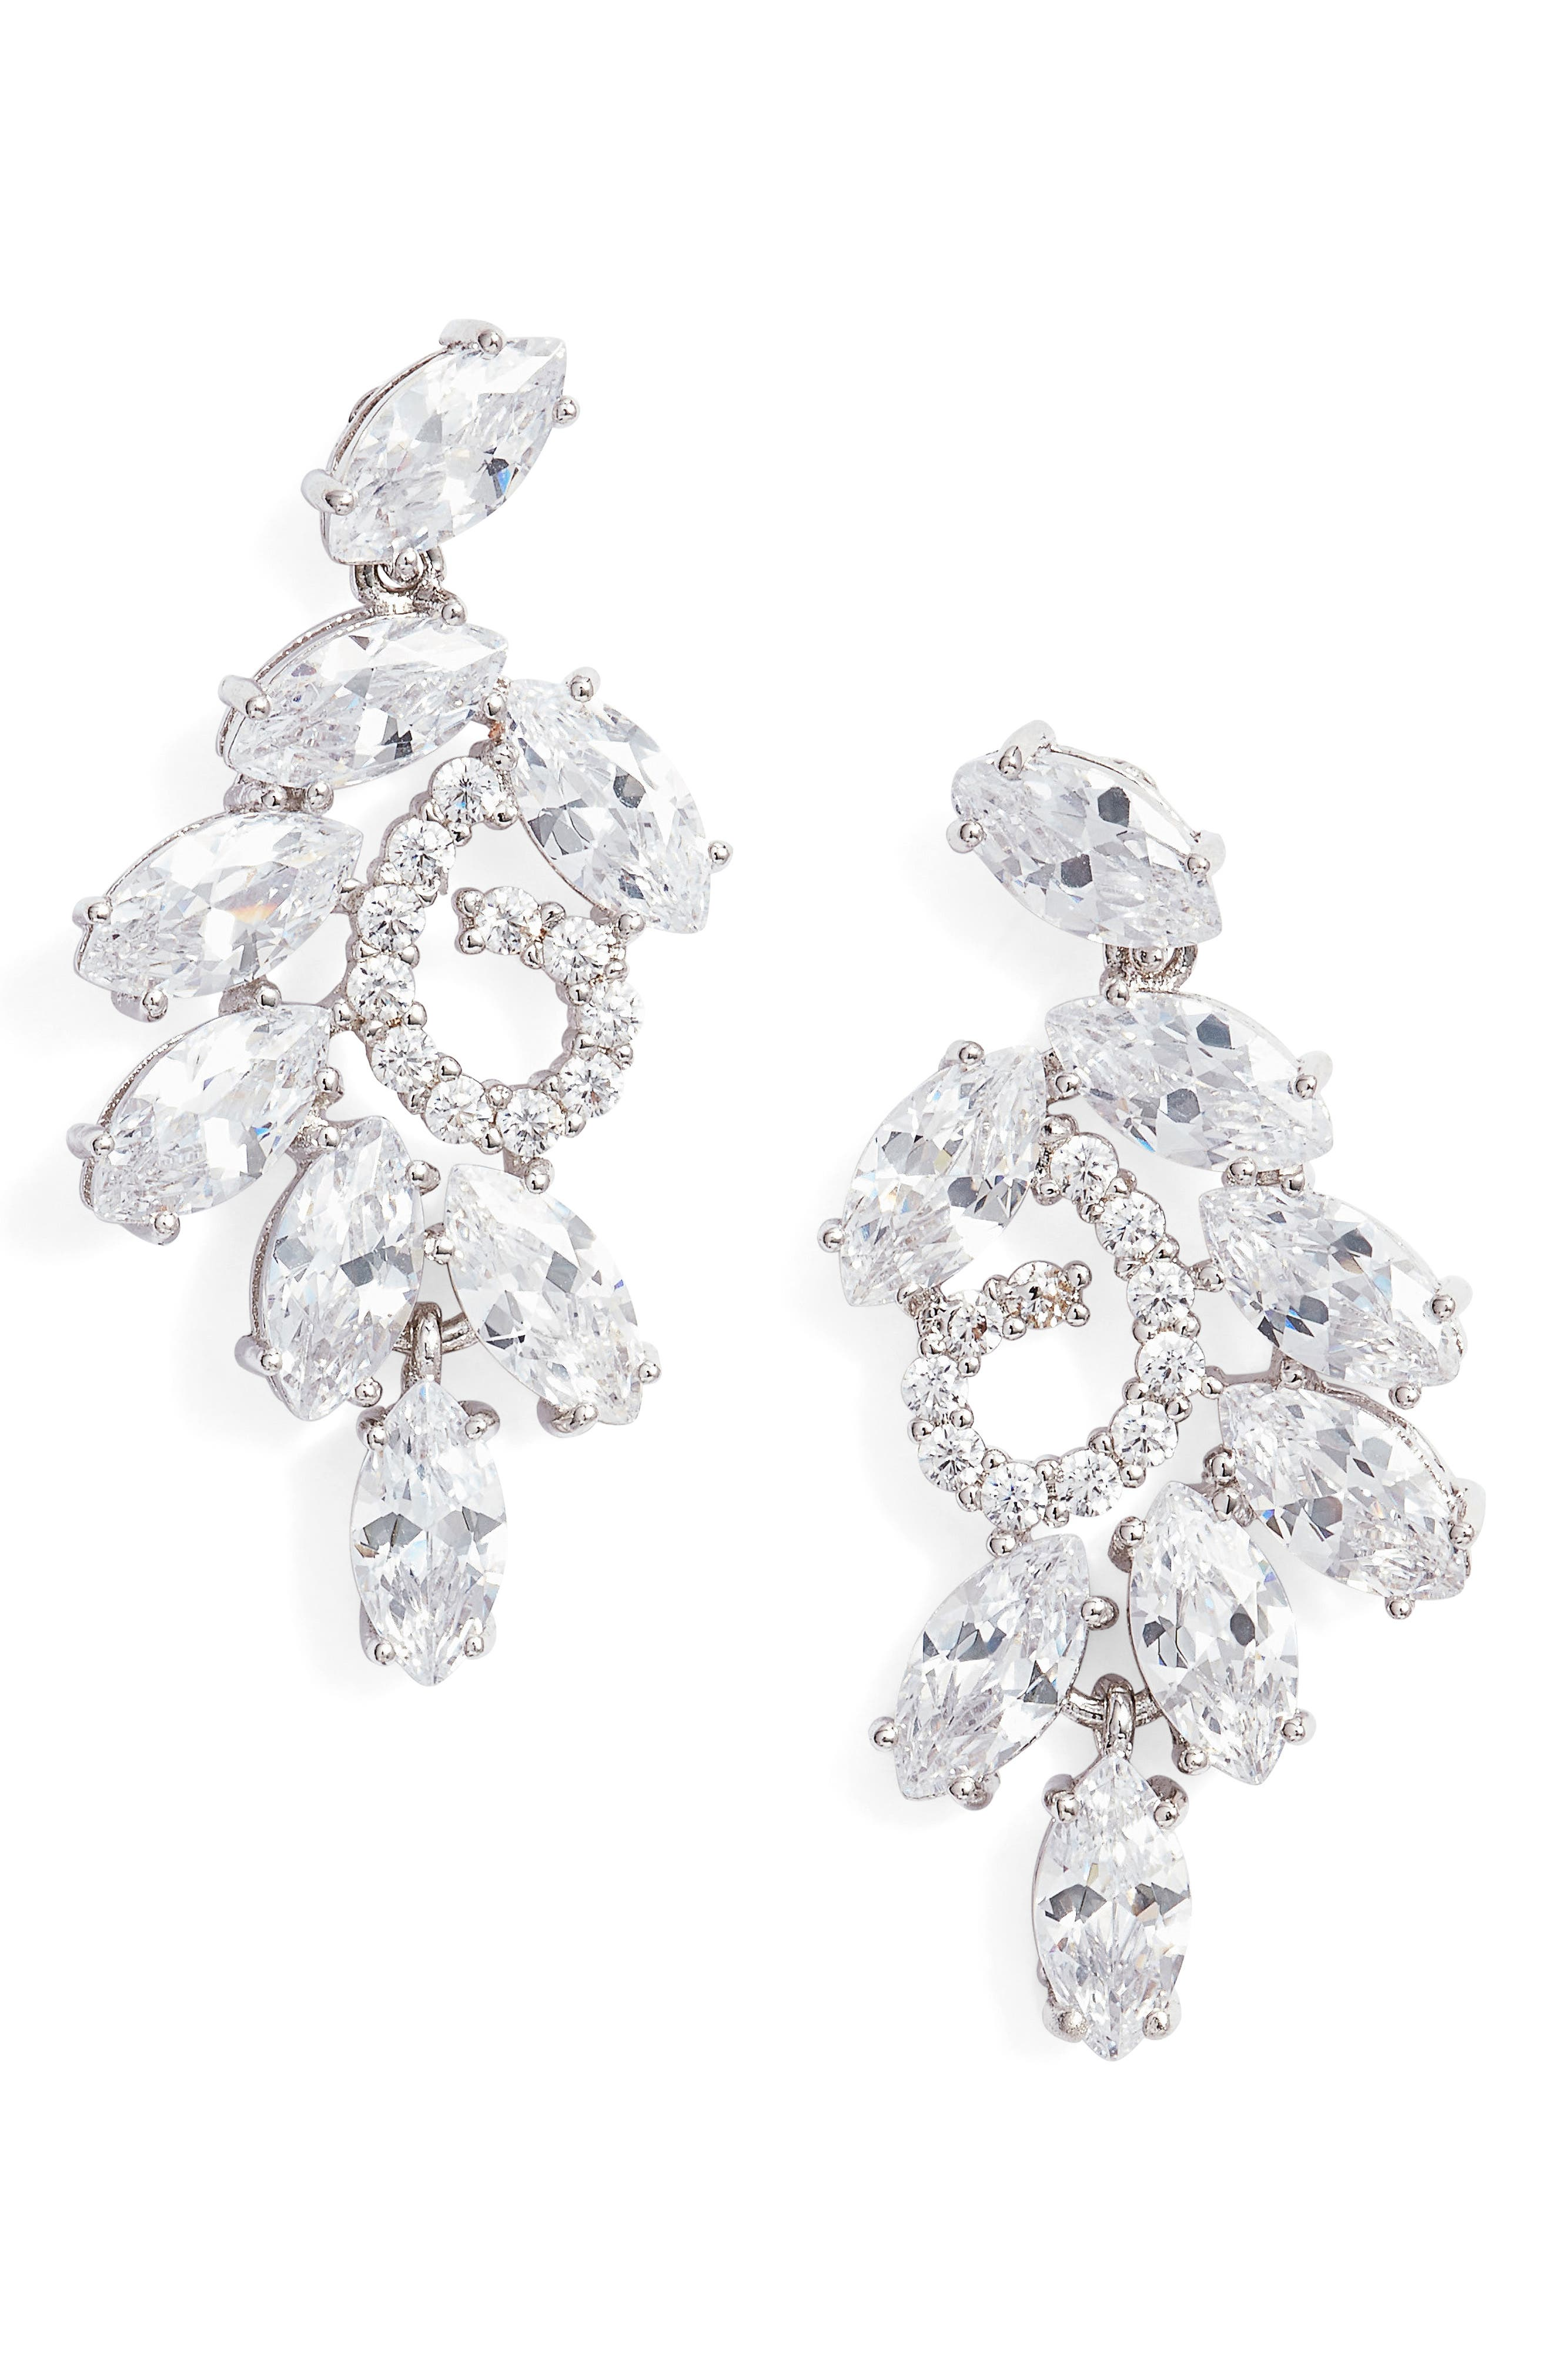 NINA, Cluster Branch Stud Earrings, Main thumbnail 1, color, SILVER/ WHITE CZ